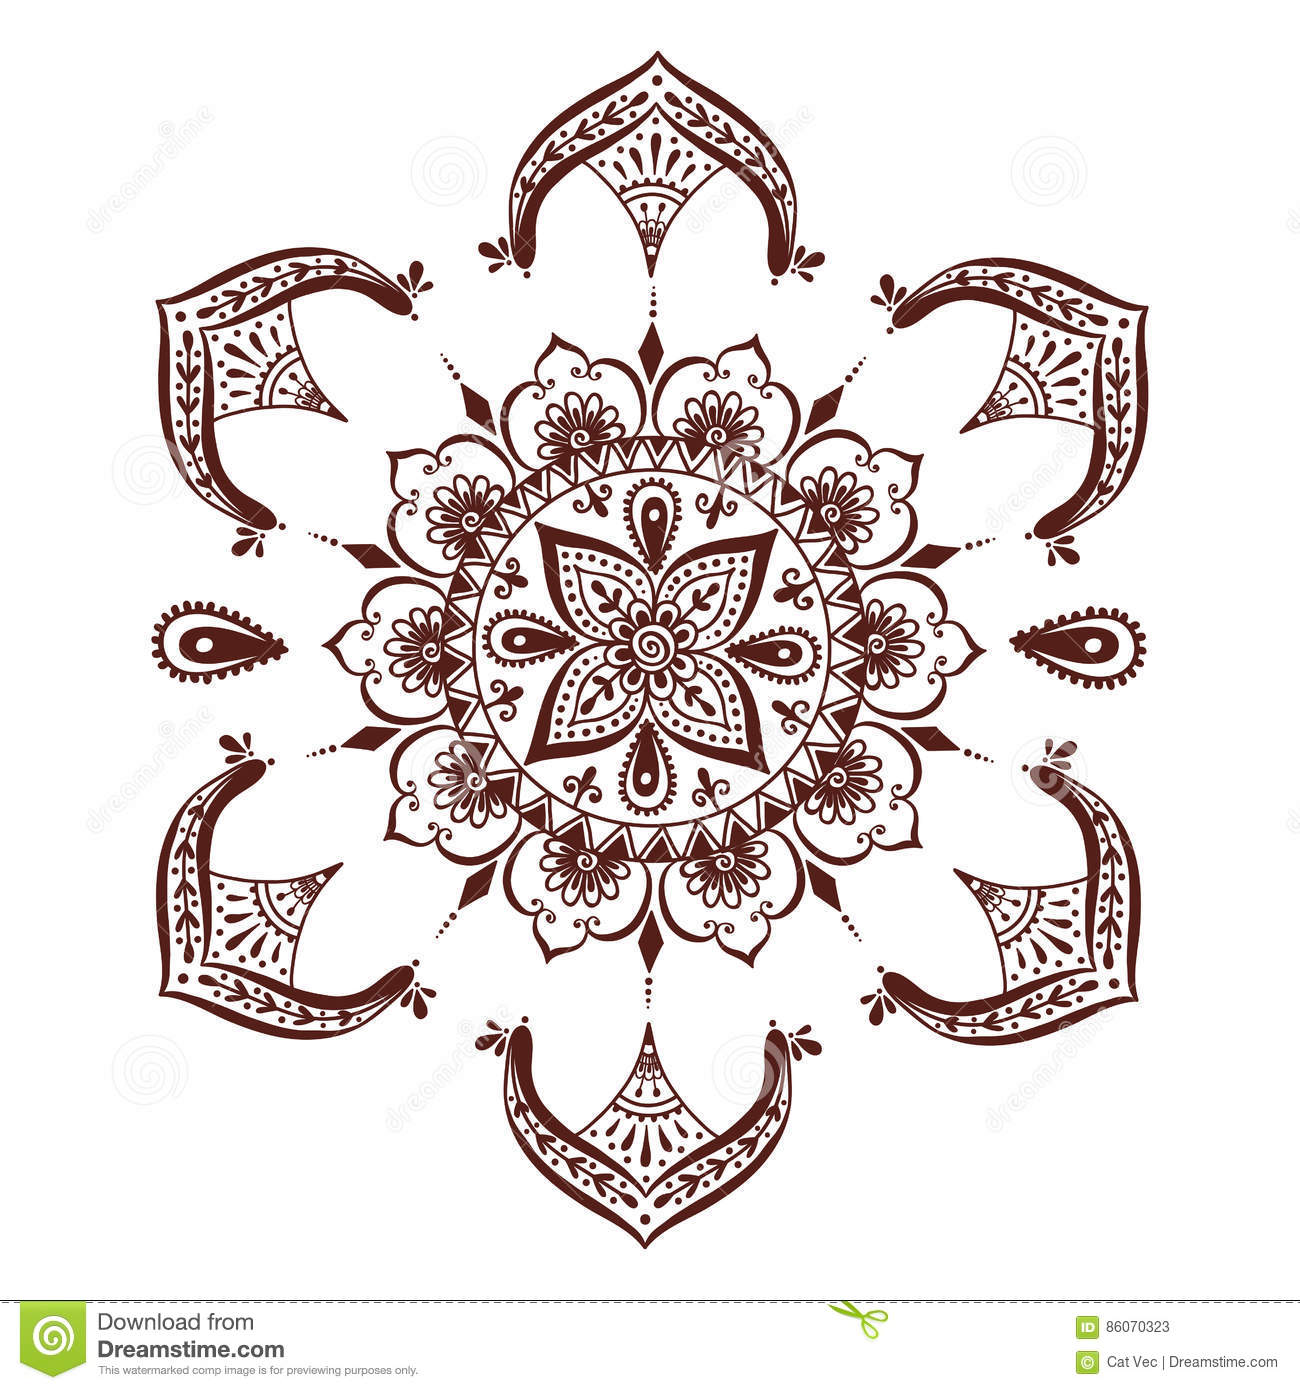 Henna Tattoo Flower Template In Indian Style: Henna Tattoo Mehndi Flower Template Vector Illustration